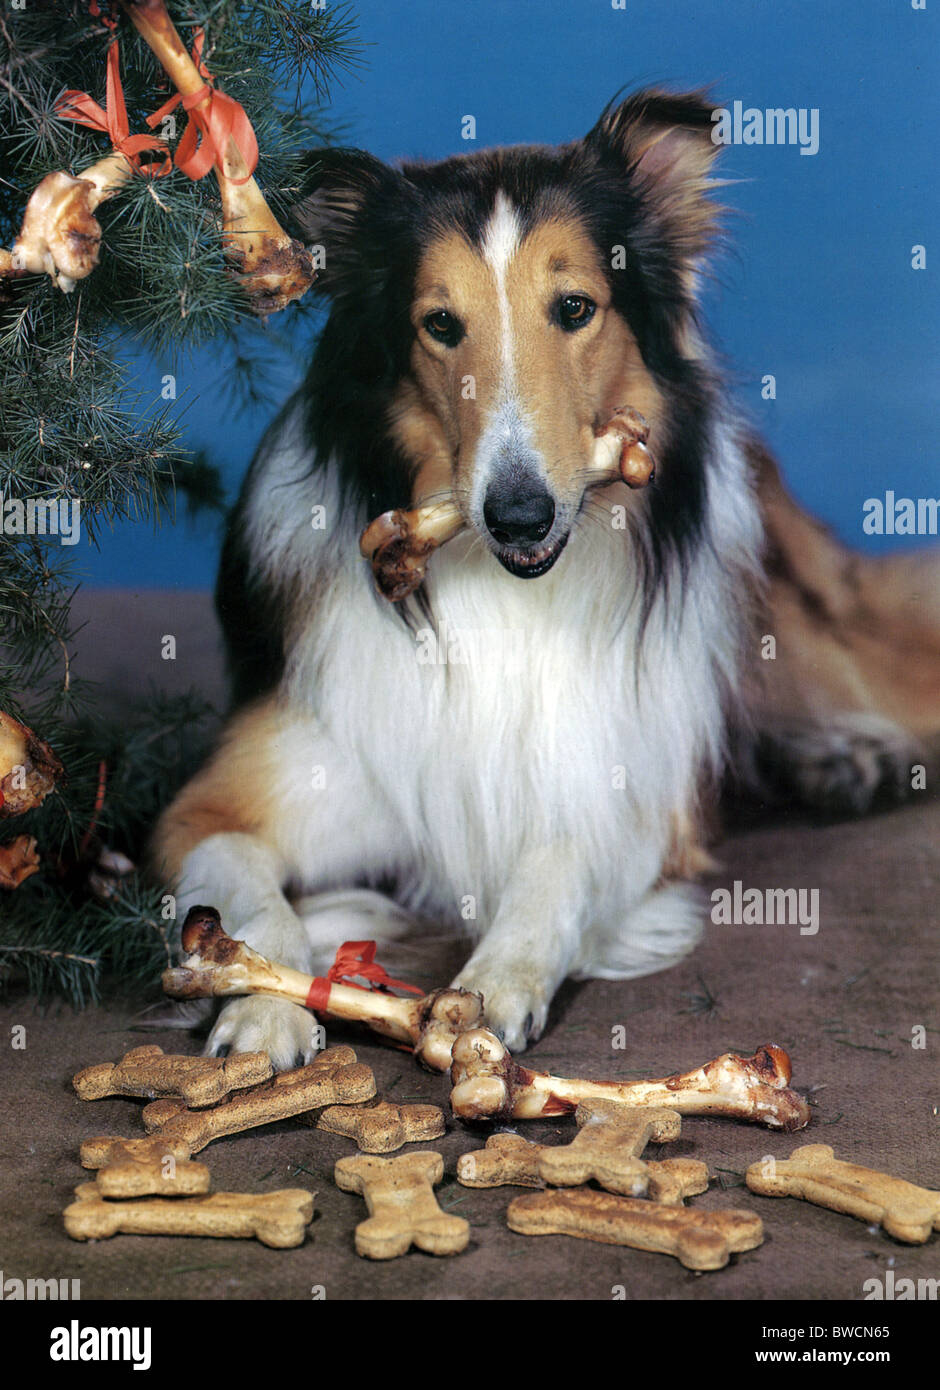 Lassie Dog Food Where To Buy